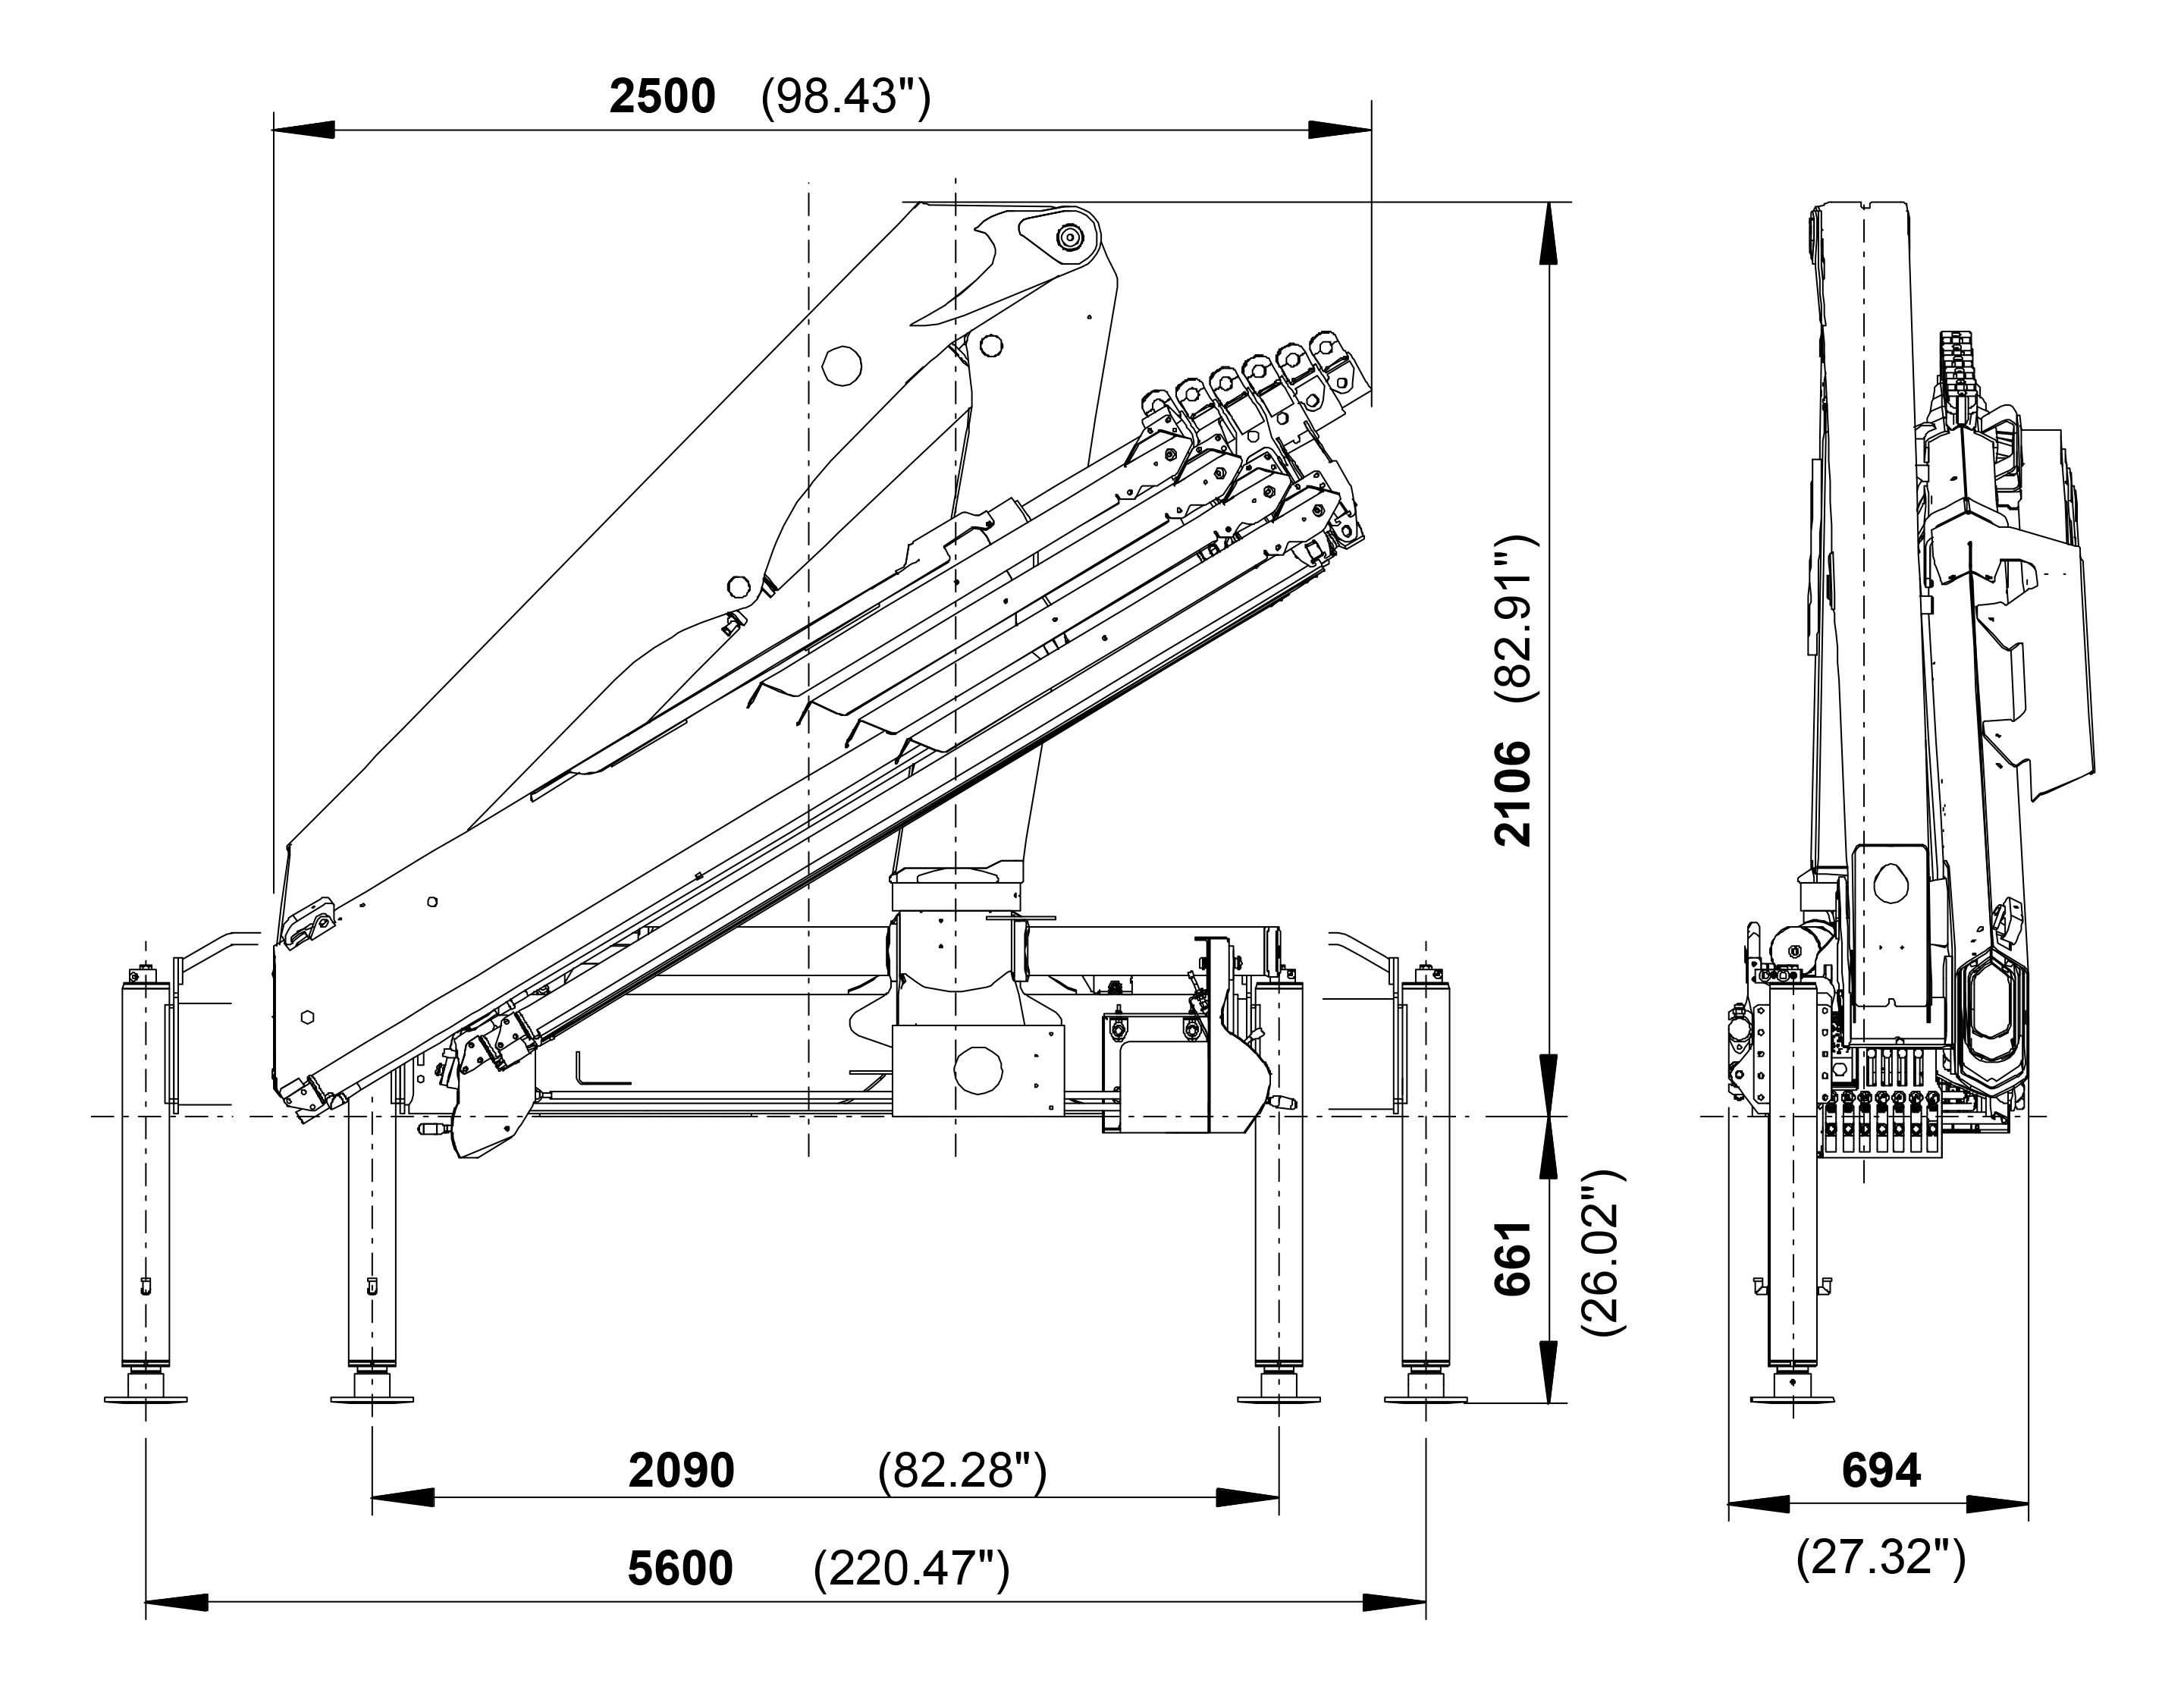 Pk 10000 Performance Palfinger Crane Schematic Cranes Shown In The Leaflet Are Partially Optional Equipped And Do Not Always Correspond To Standard Version Country Specific Regulations Must Be